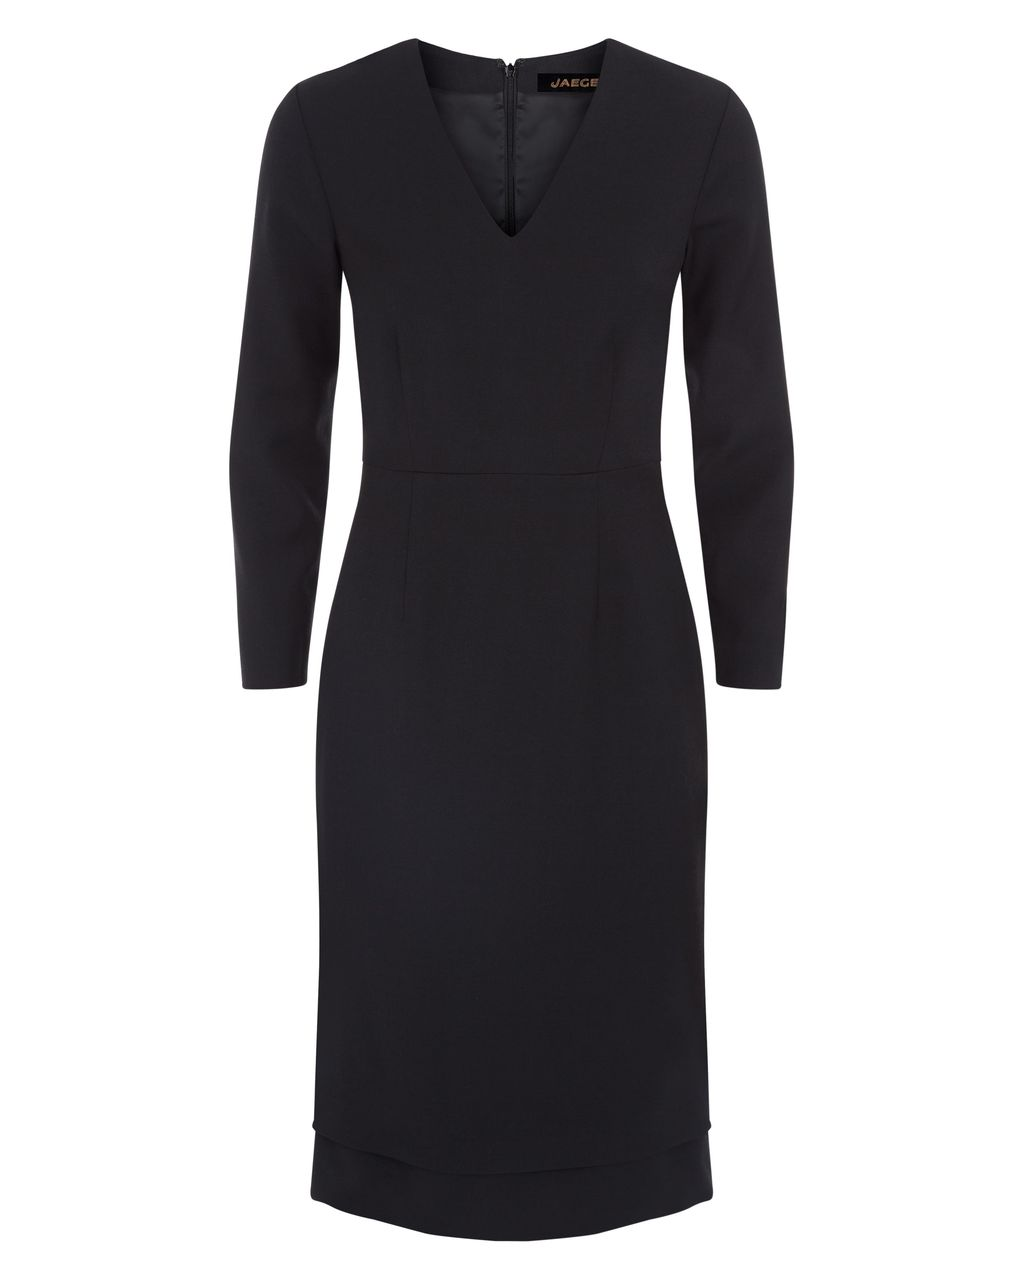 Floating Hem Dress, Black - style: shift; neckline: v-neck; fit: tailored/fitted; pattern: plain; predominant colour: black; occasions: work, creative work; length: just above the knee; fibres: wool - mix; sleeve length: 3/4 length; sleeve style: standard; texture group: crepes; pattern type: fabric; season: s/s 2016